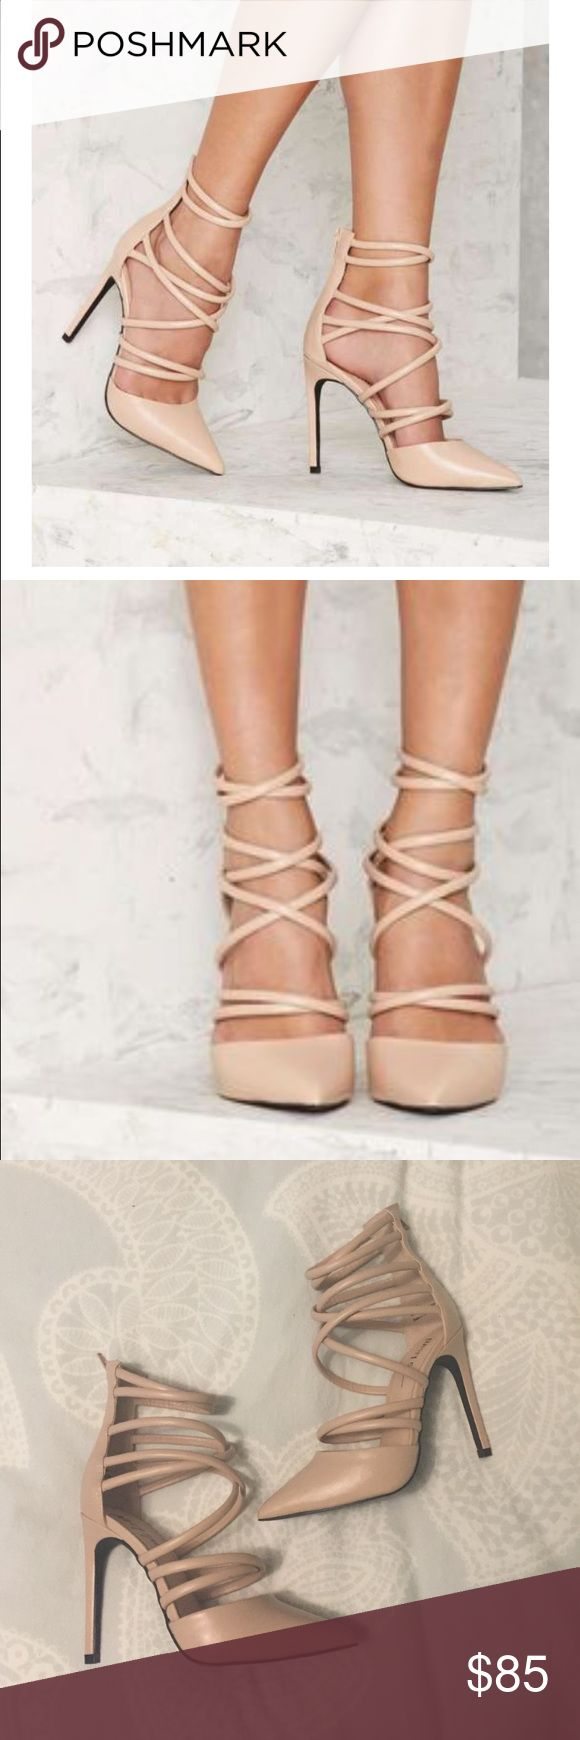 Nasty Gal Cecily Strappy Heel - Nude Super cute nude strappy high heels from Nasty Gal - SIZE 6 (which is sold out on their website) Vegan leather, features a pointed toe, stiletto heel, thick strap detail at front, covered heel, and enclosed zipper at back. *never worn!* Nasty Gal Shoes Heels